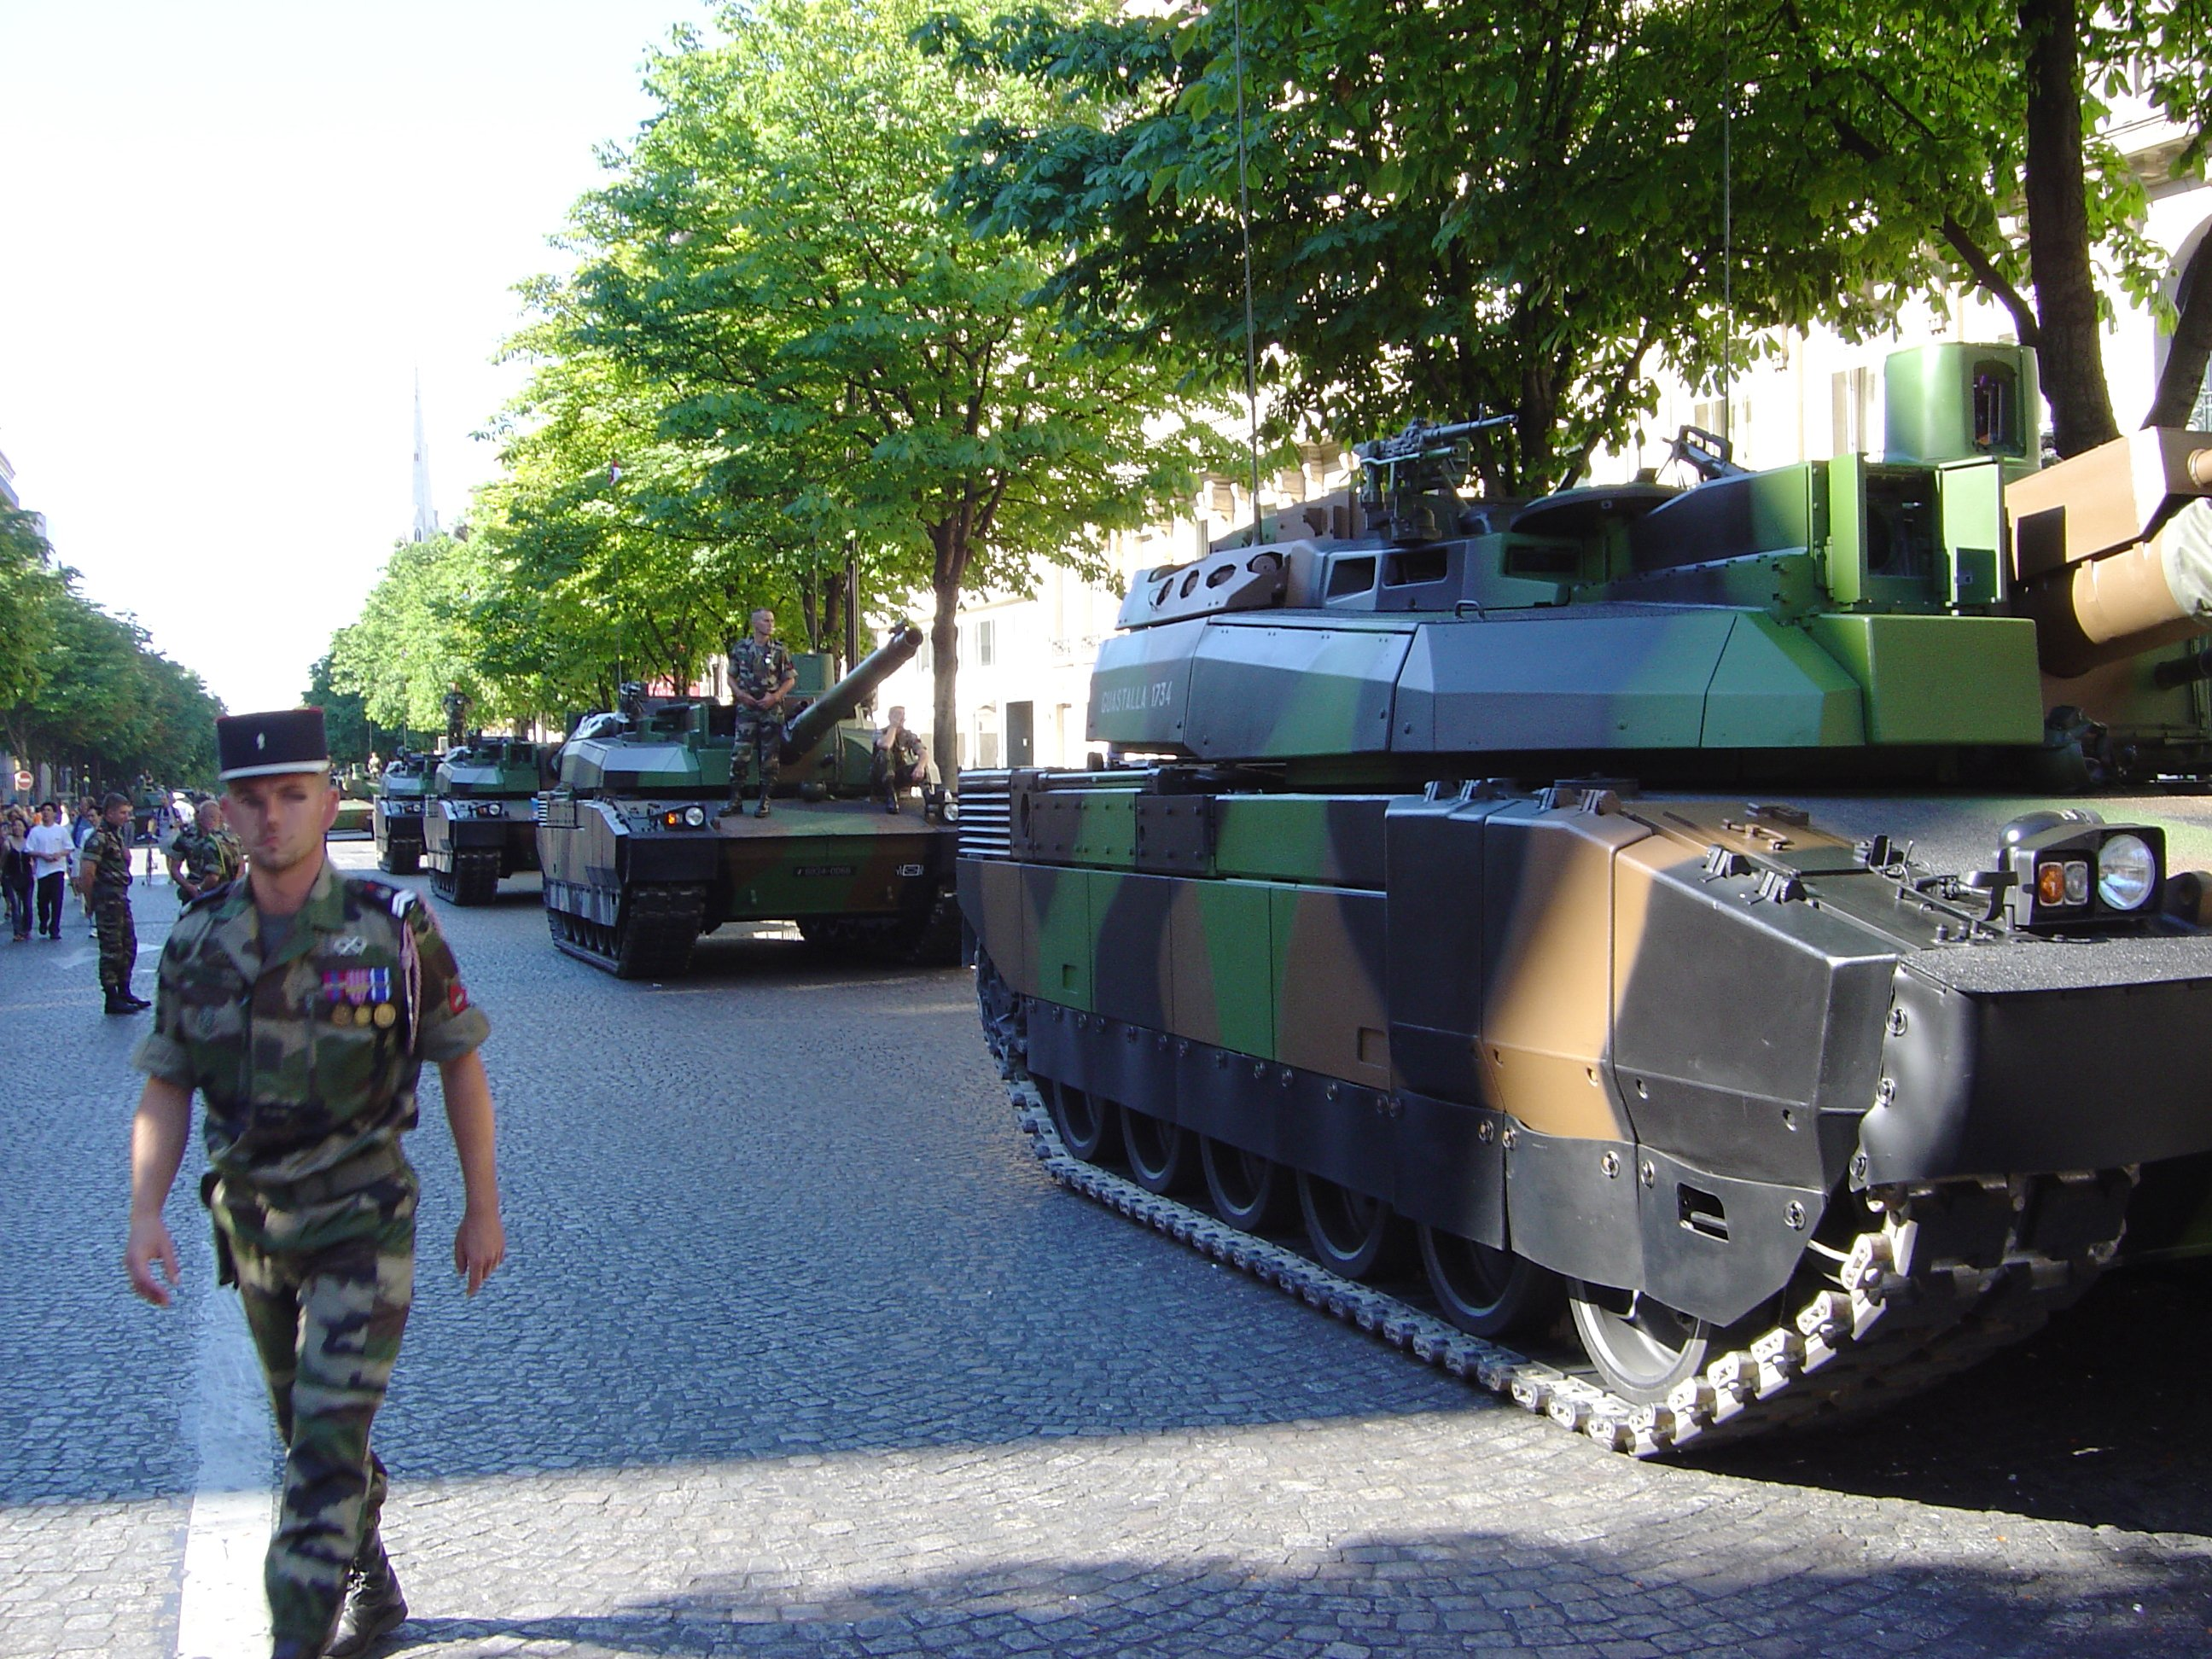 French_military_on_Champs_Elysees_DSC007